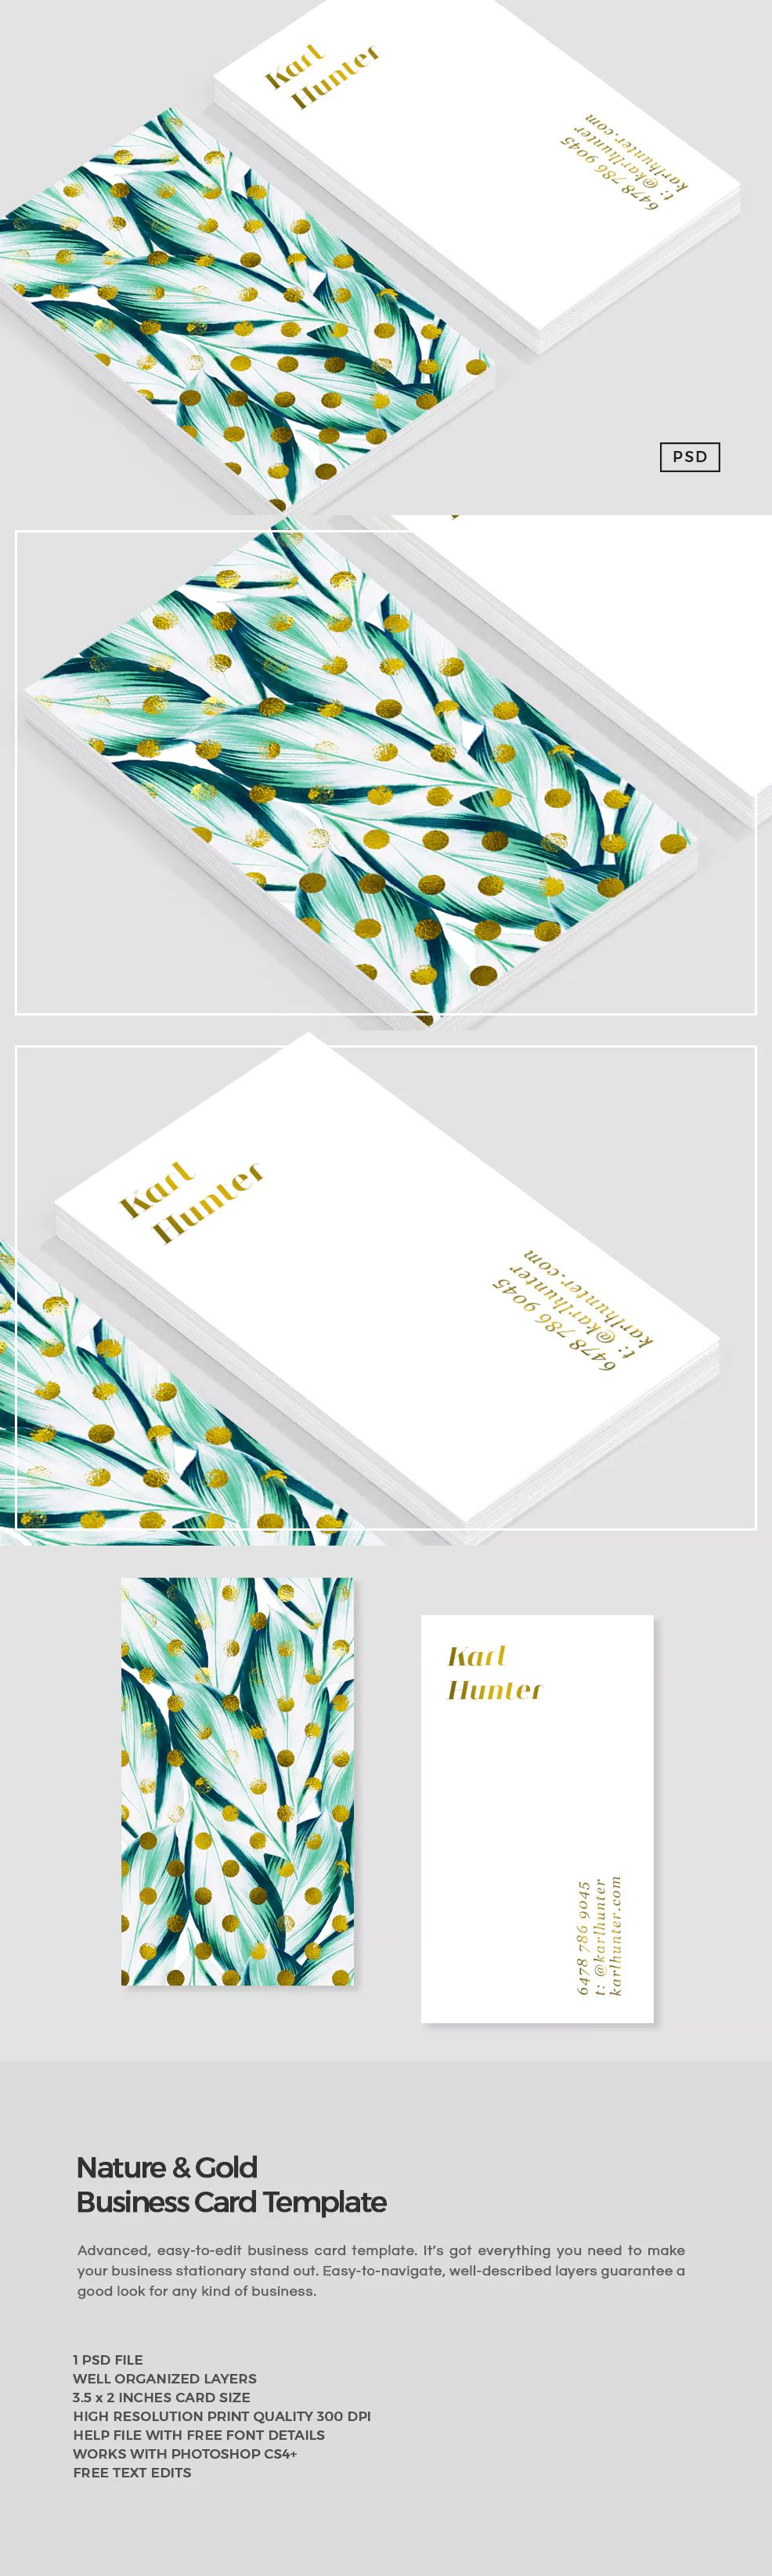 Banana Leaf Business Card Template by The Design Label on ...